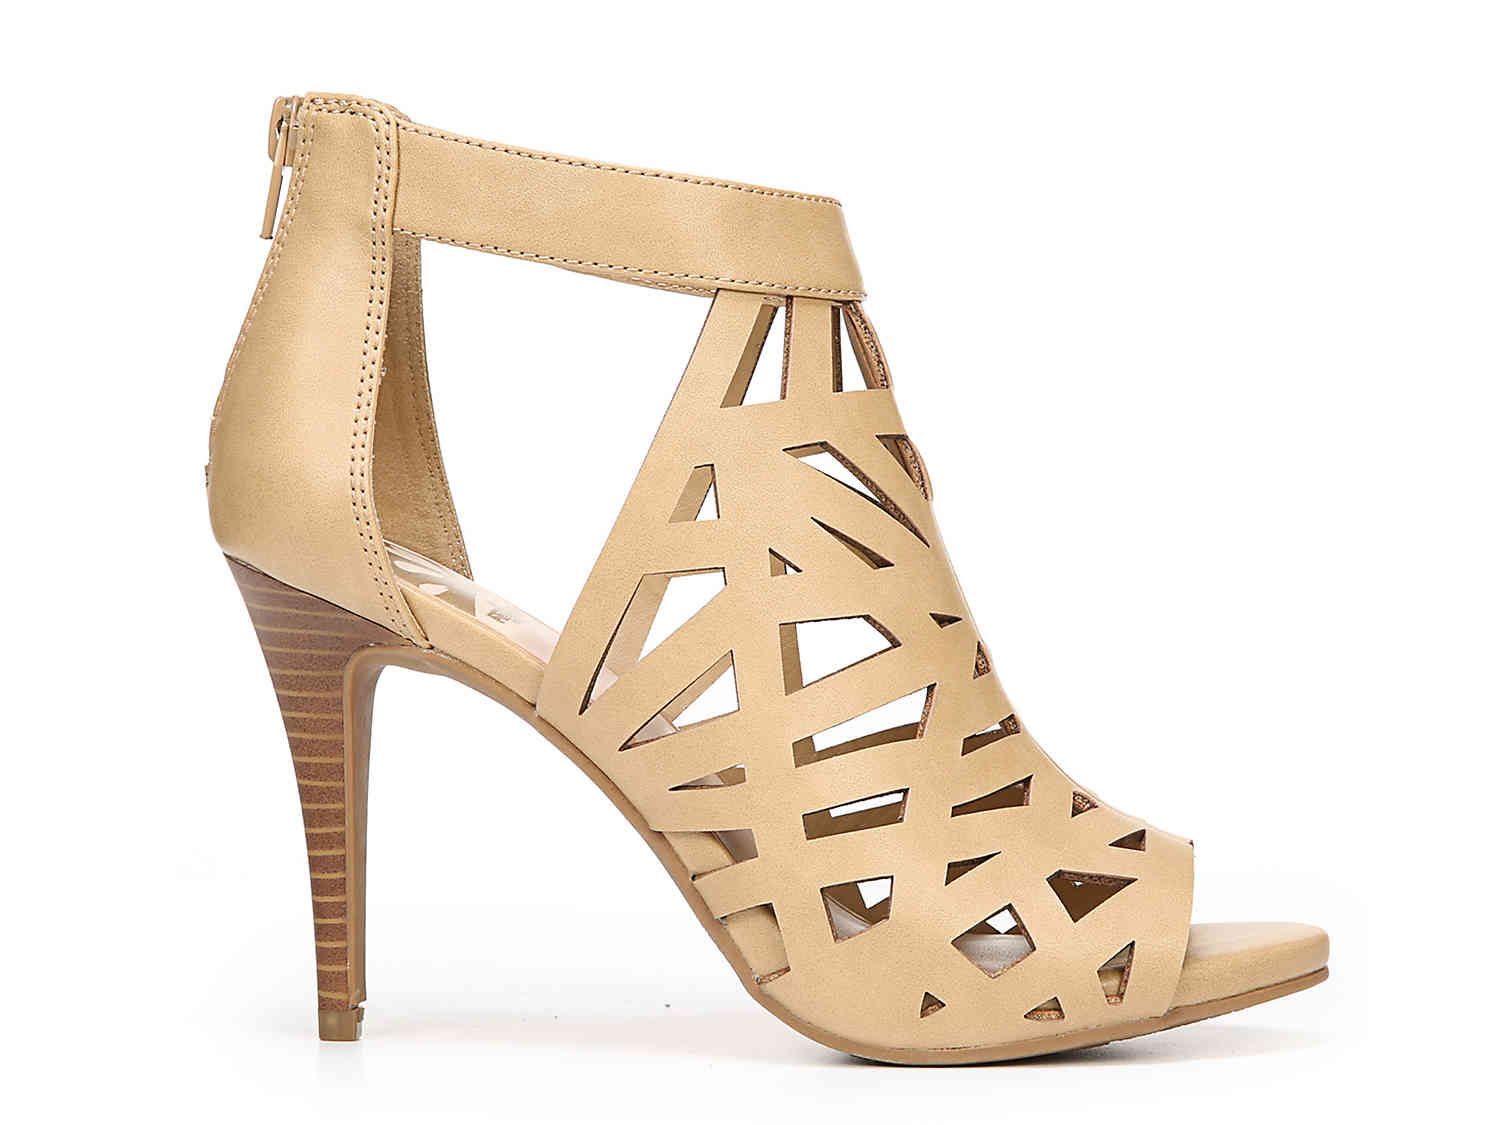 Make them look twice with the sexy Huddle Dress Sandal from Fergalicious.